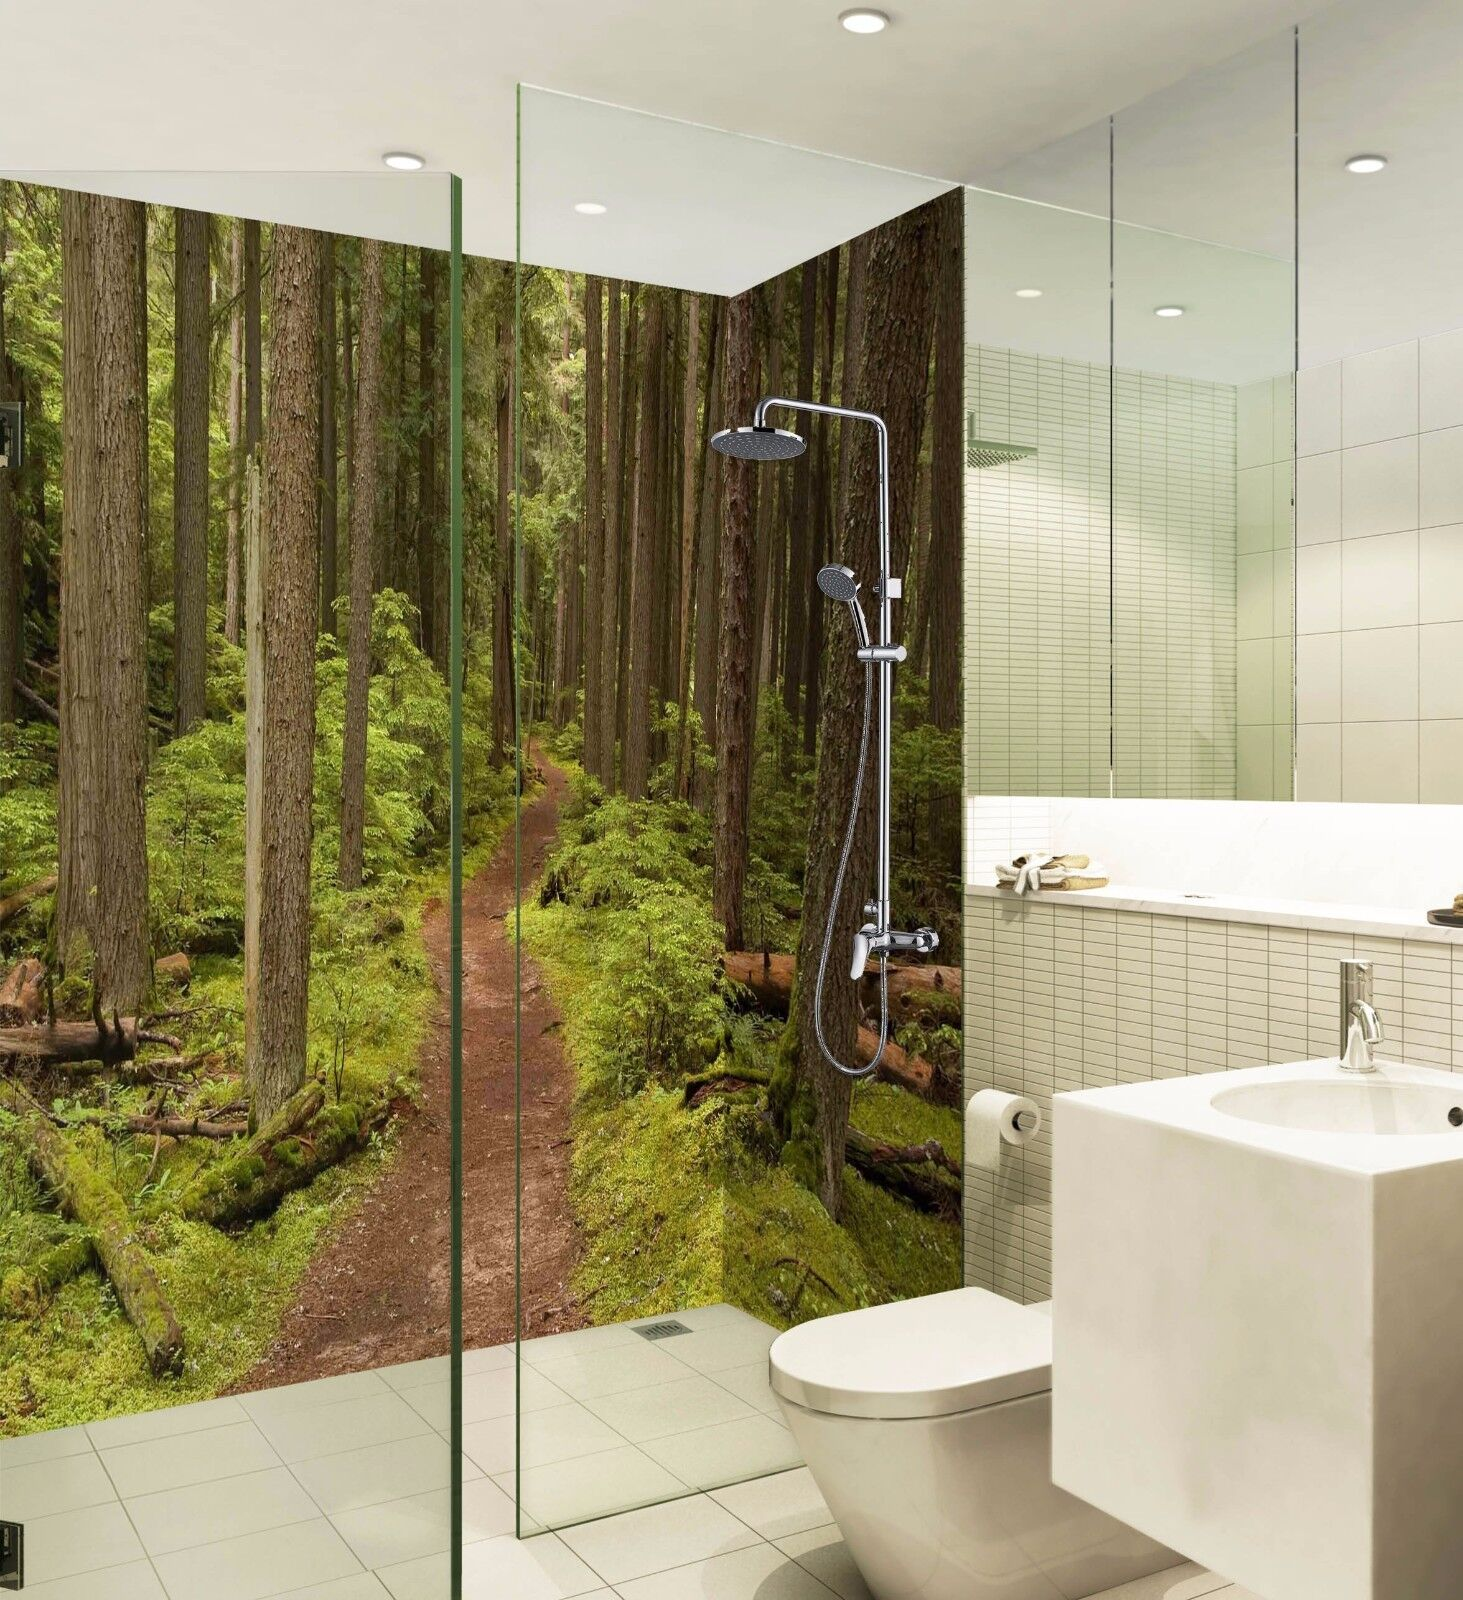 3D Forest path 656 WallPaper Bathroom Print Decal Wall Deco AJ WALLPAPER UK